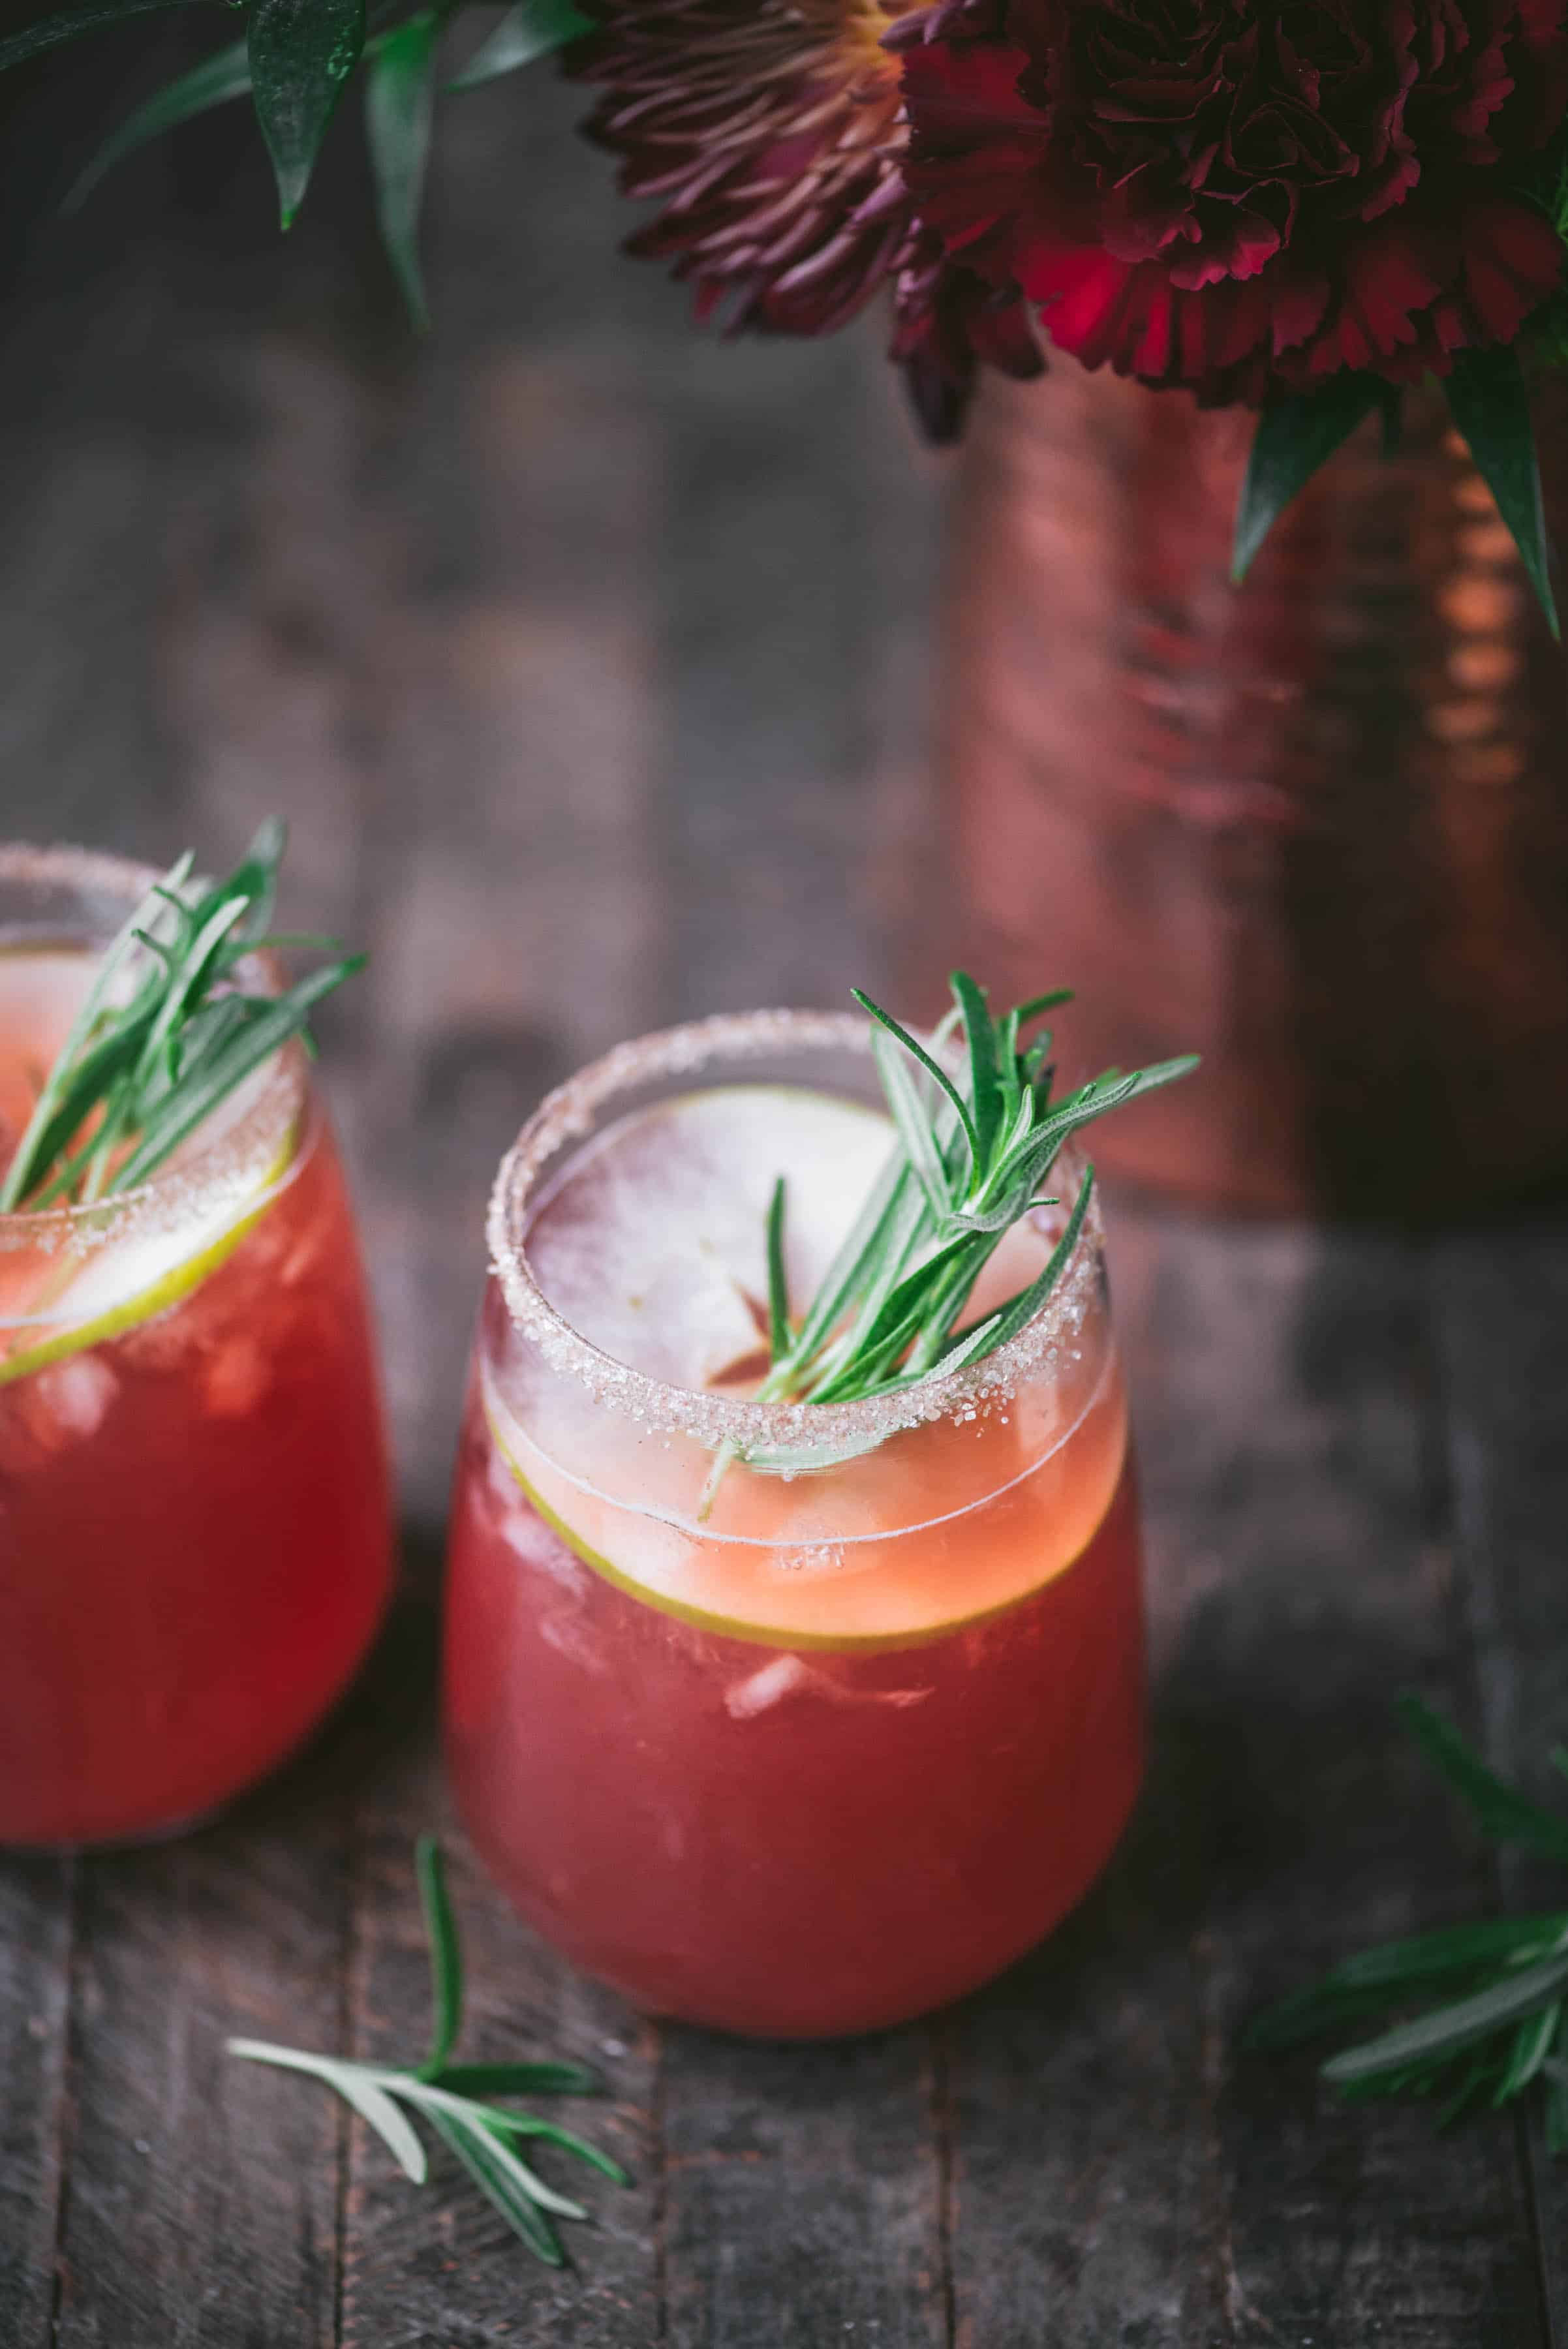 45 degree angle of apple cider cranberry margarita with rosemary and apple garnish on rustic wood background